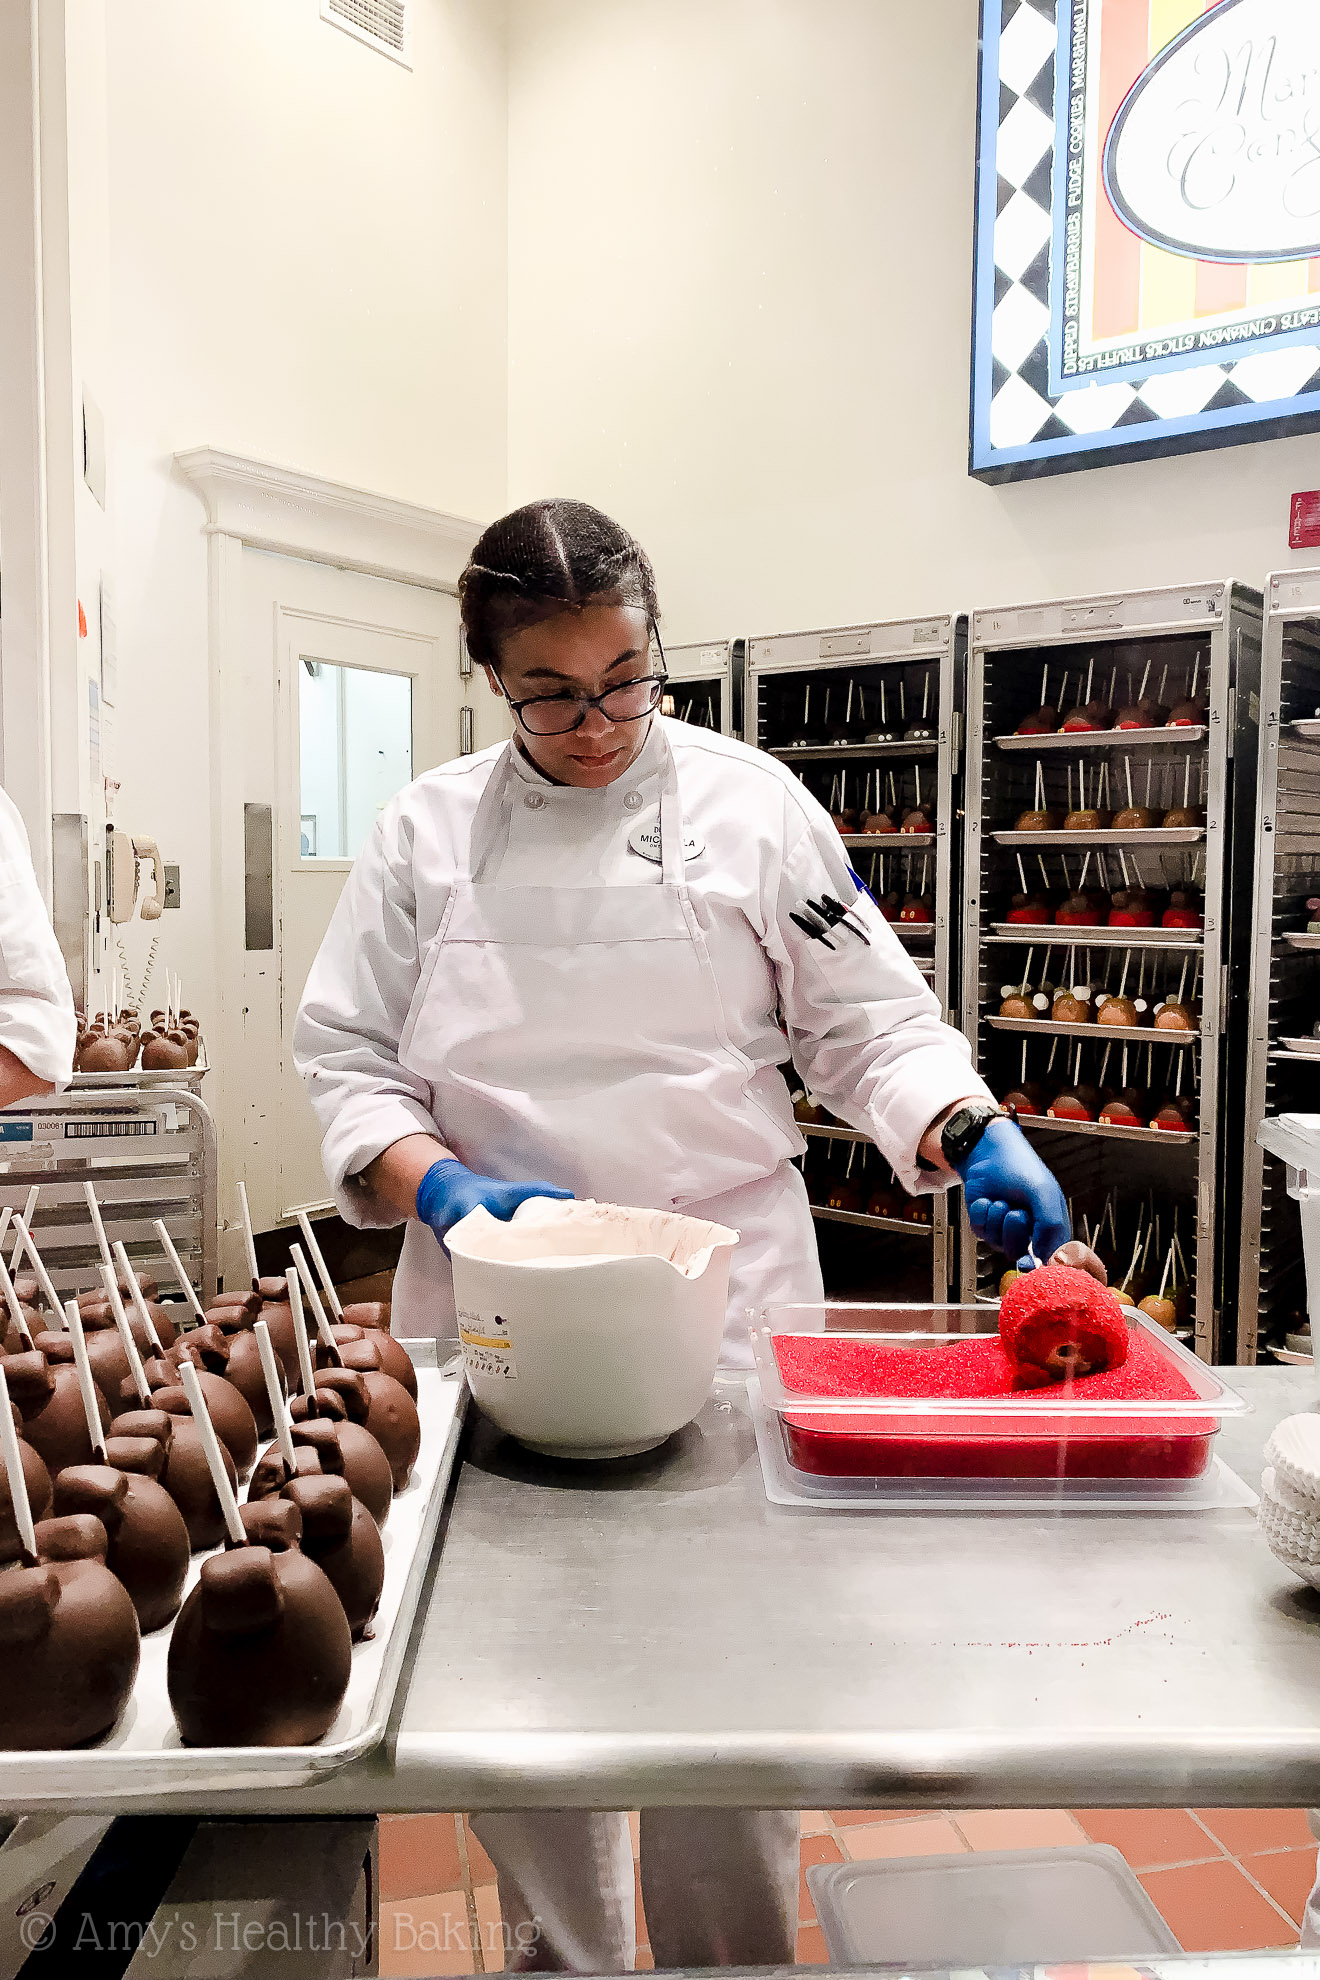 Making Mickey Mouse caramel apples in Downtown Disney - Anaheim, California